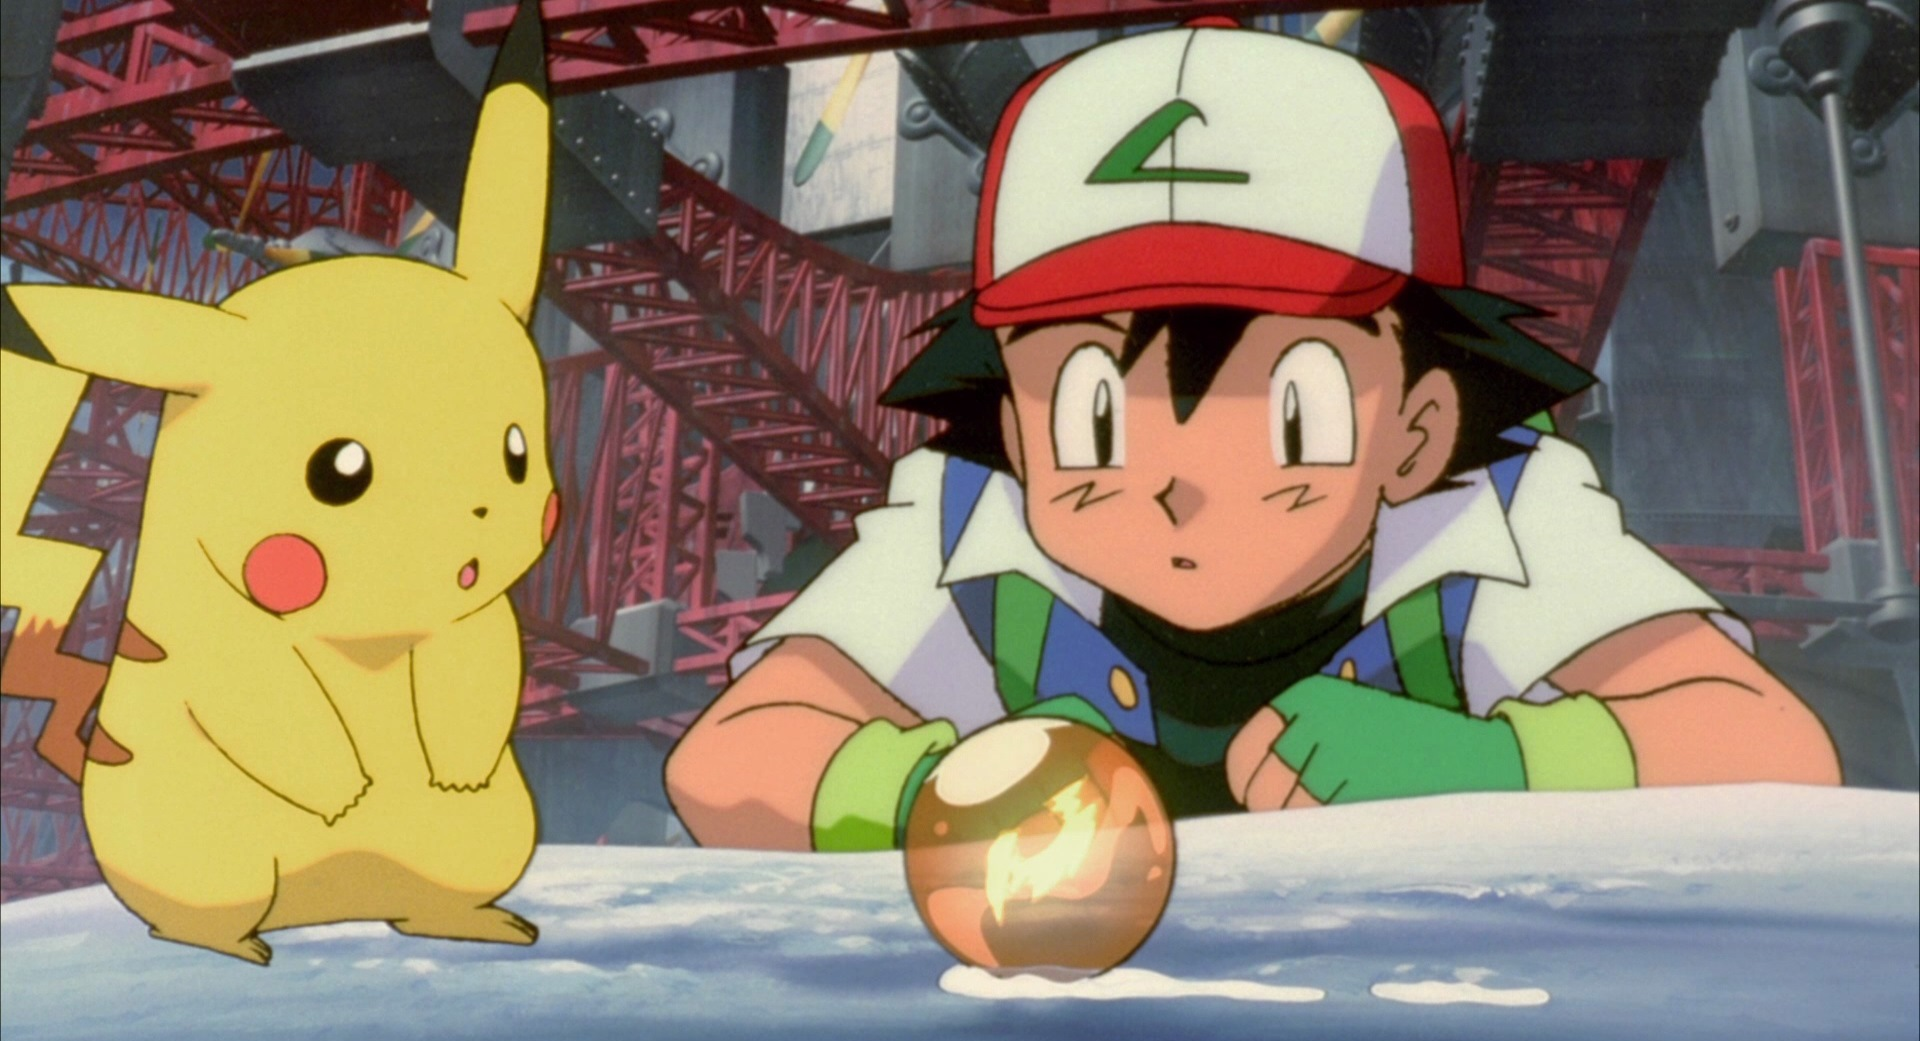 Ash Ketchum and Pikachu in Pokemon: The Power of One (1999)